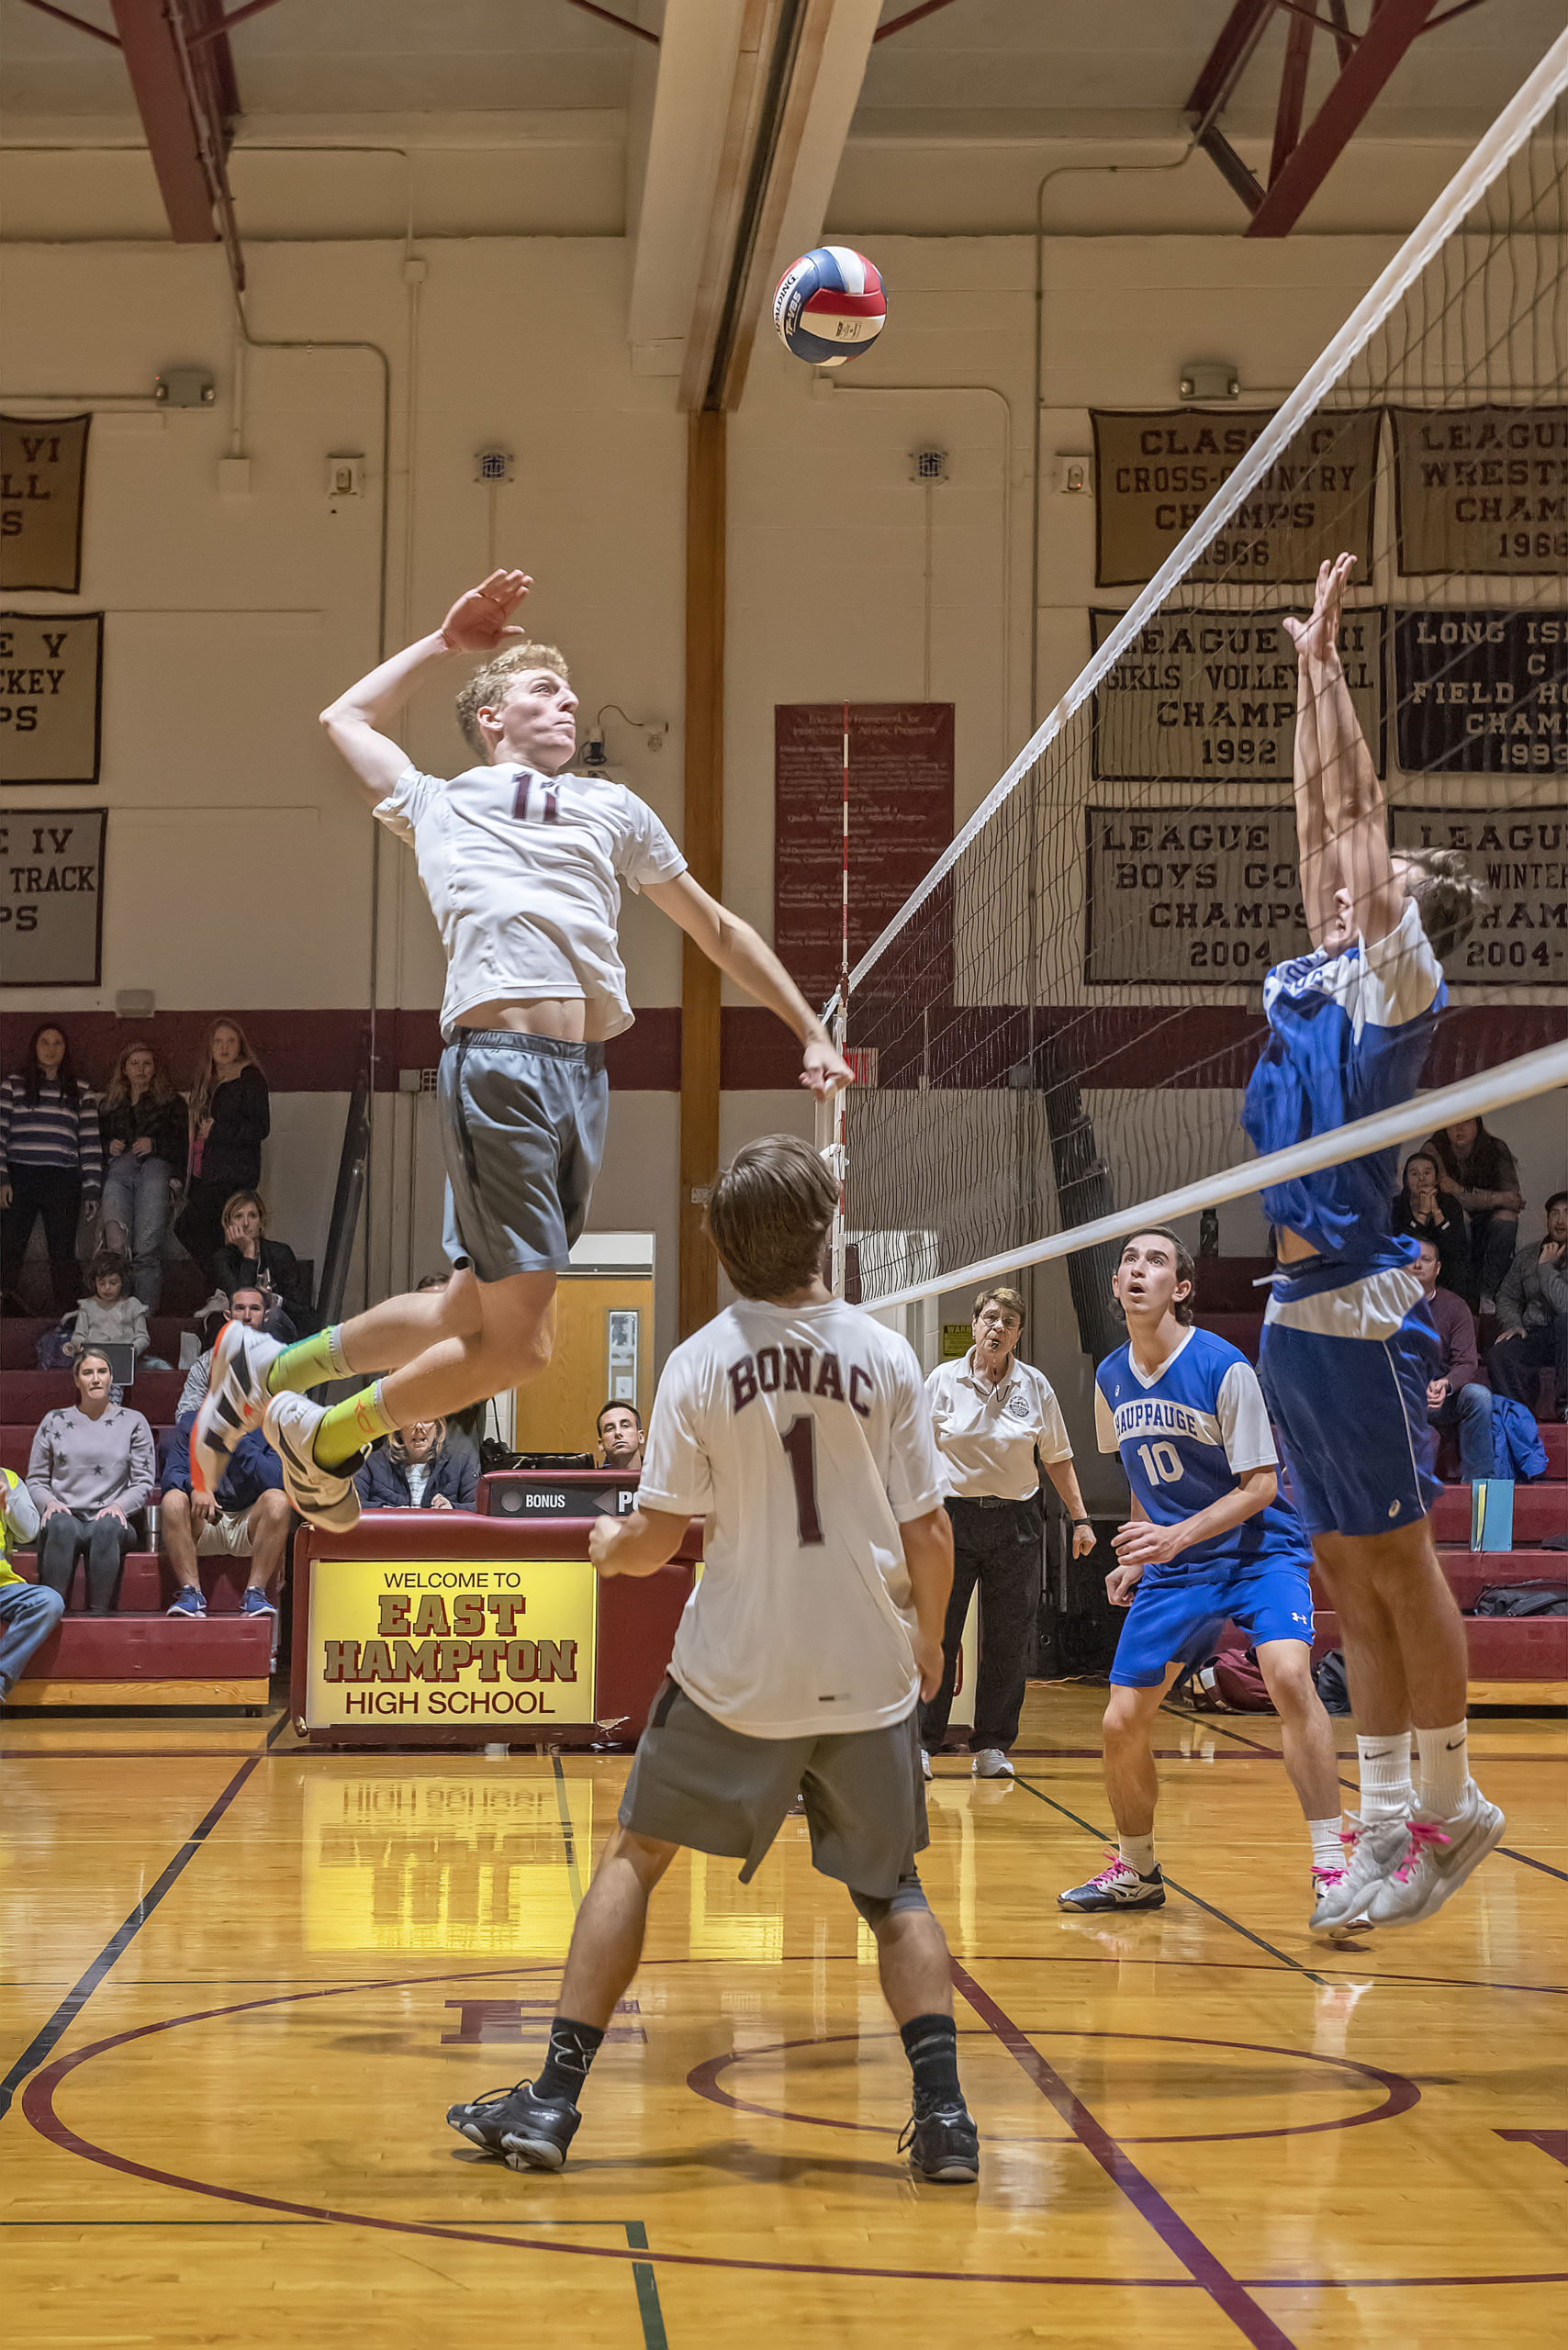 Luc Campbell returns for the East Hampton boys volleyball team.